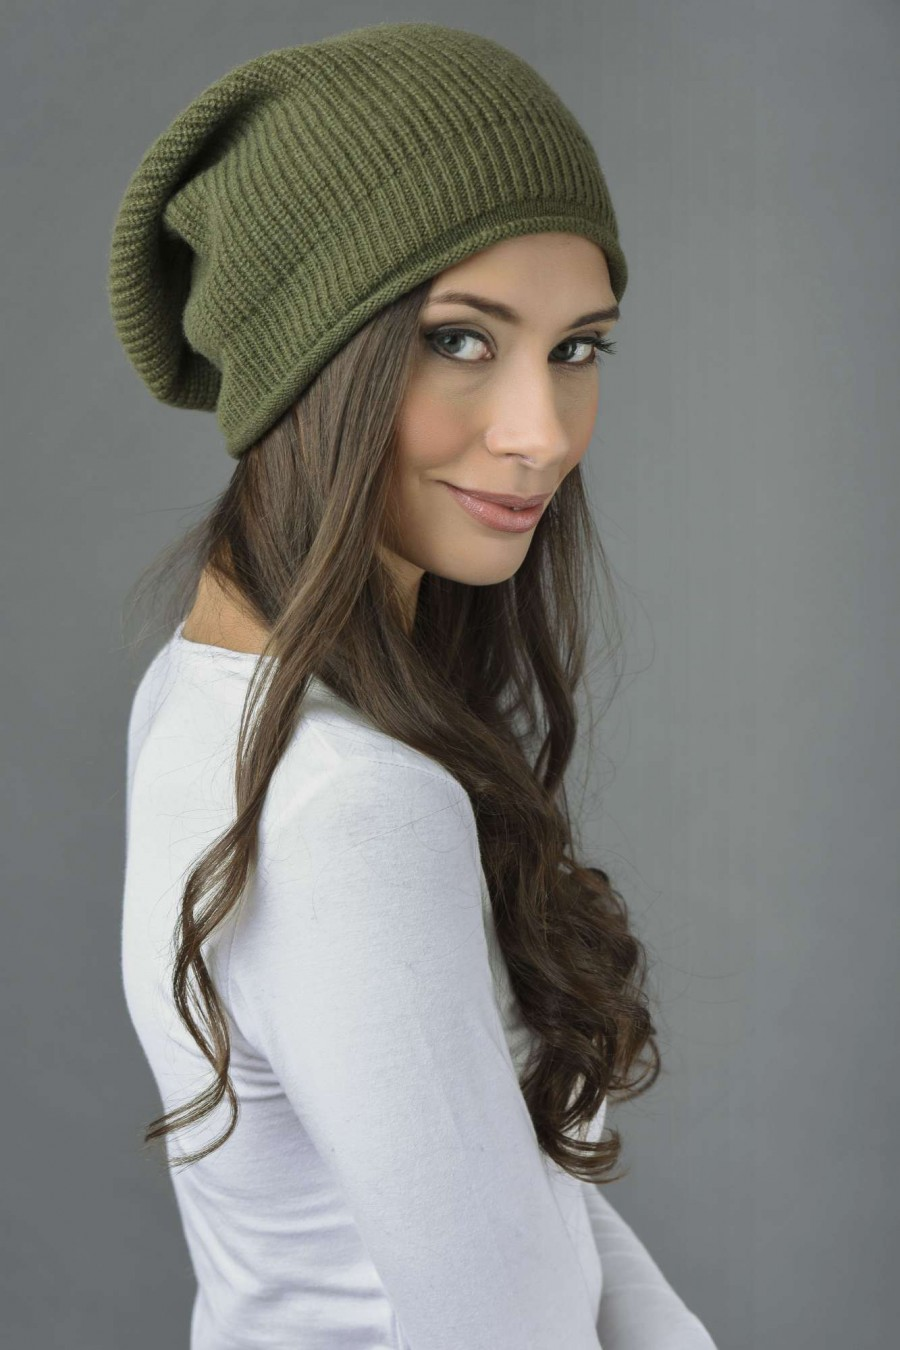 d665f708b Pure Cashmere Ribbed Knitted Slouchy Beanie Hat in Loden Green